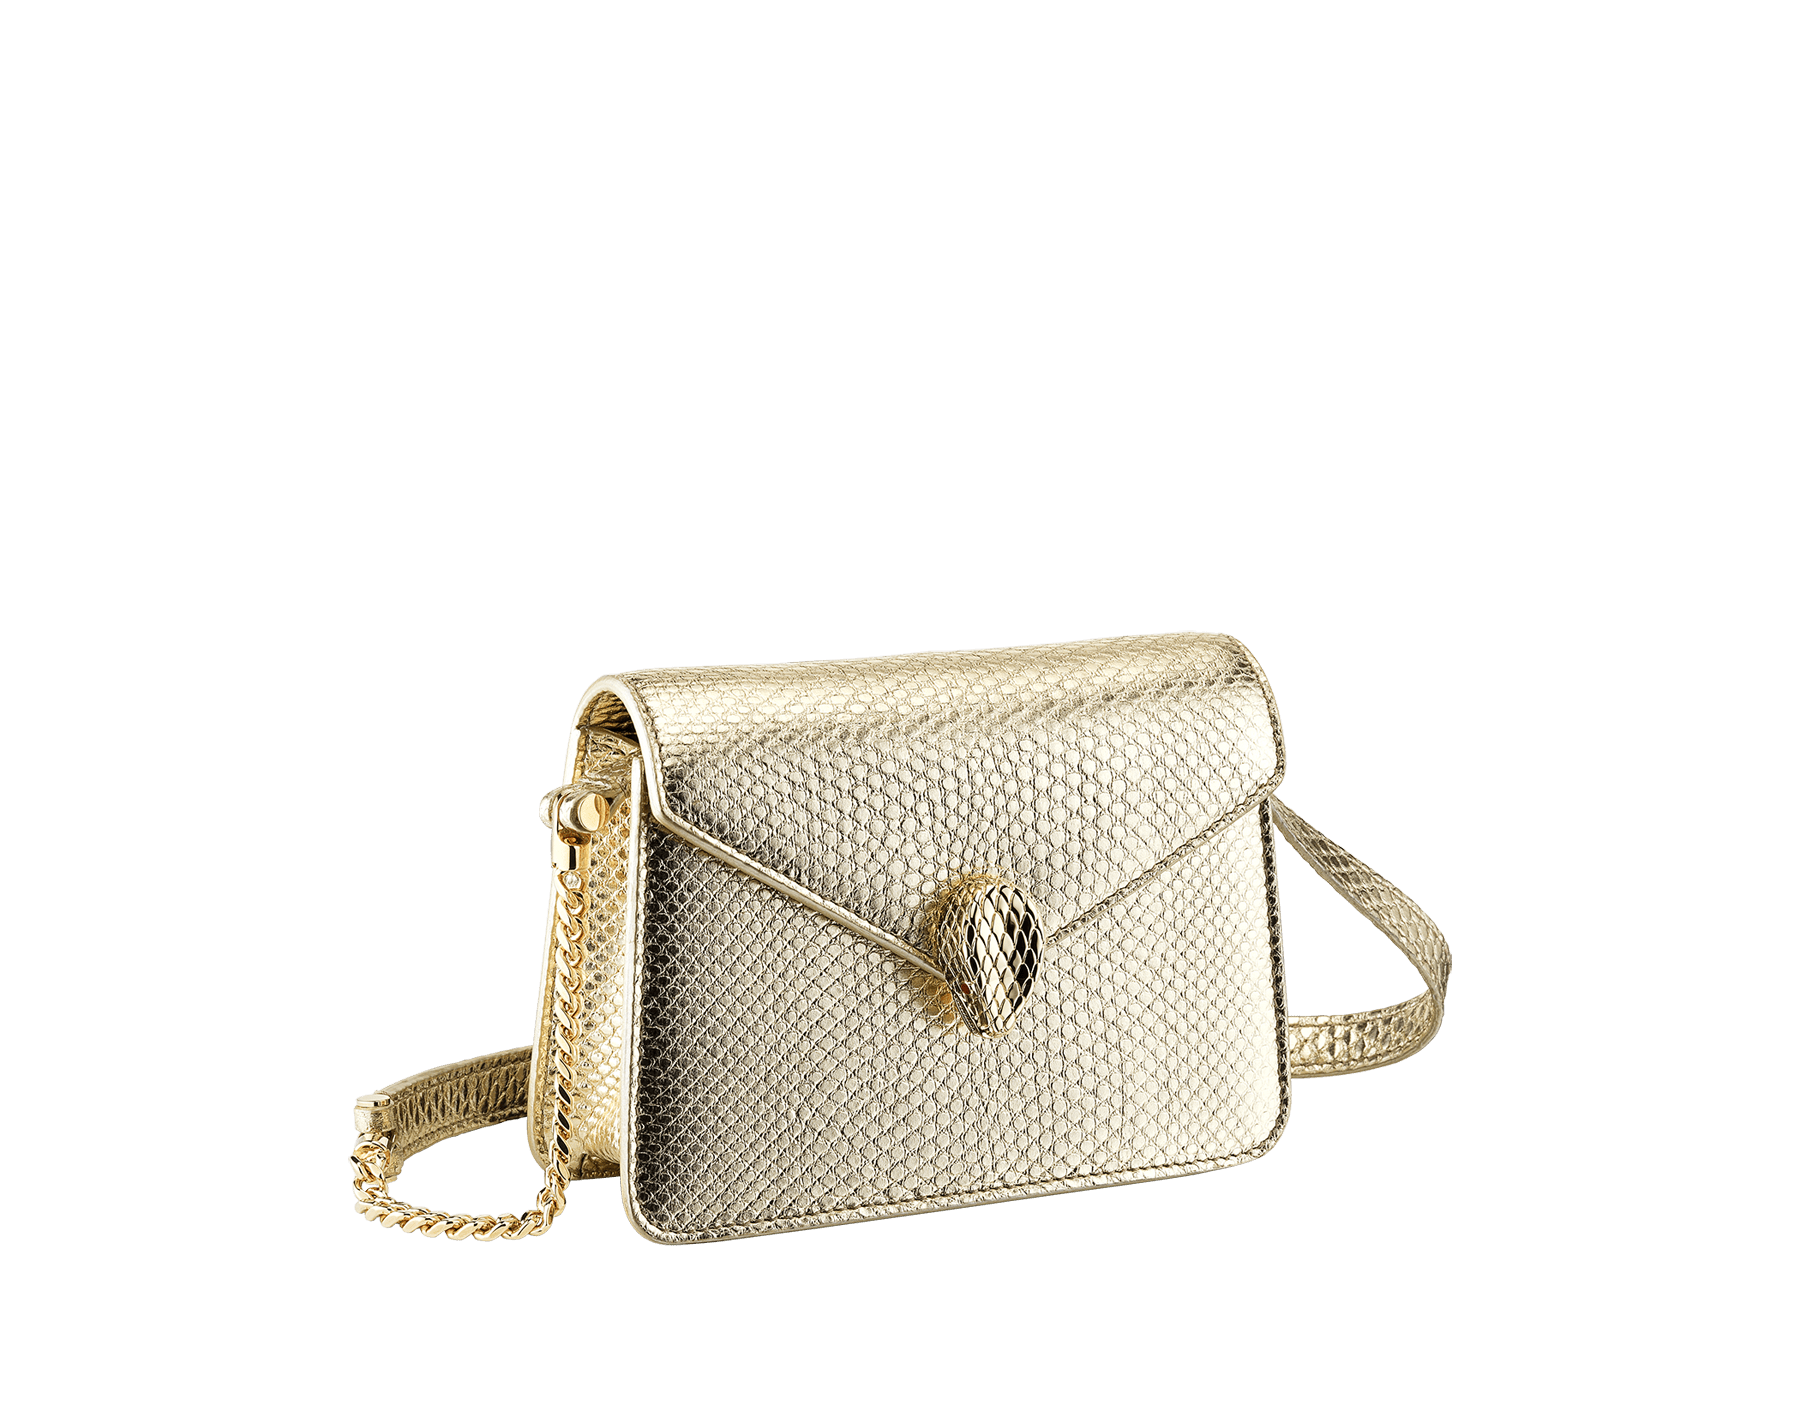 """Serpenti Forever"" mini bag in ""Molten"" light gold karung skin with black nappa leather inner lining, offering a touch of radiance for the Winter Holidays. New Serpenti head closure in light gold-plated brass, complete with ruby-red enamel eyes. Winter Holidays Edition SEA-MINICROSSBODY image 1"